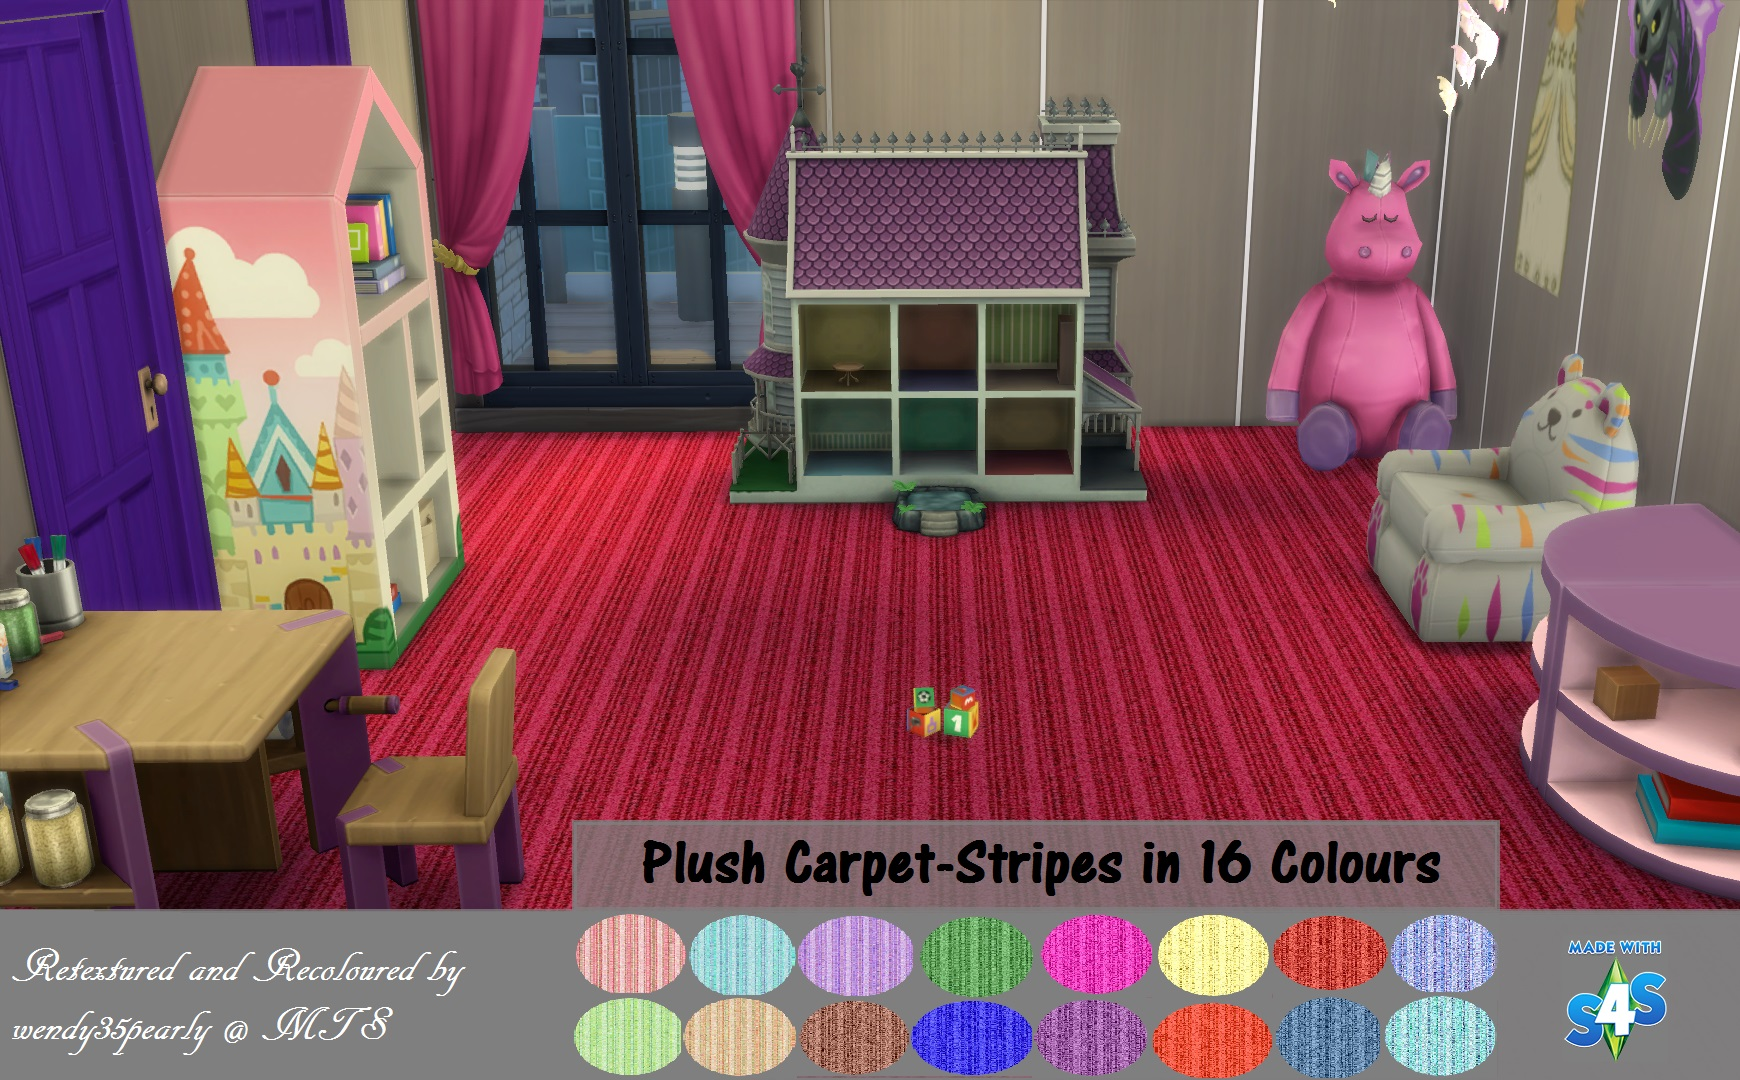 Plush Comfort Carpeting-16 Colors by wendy35pearly